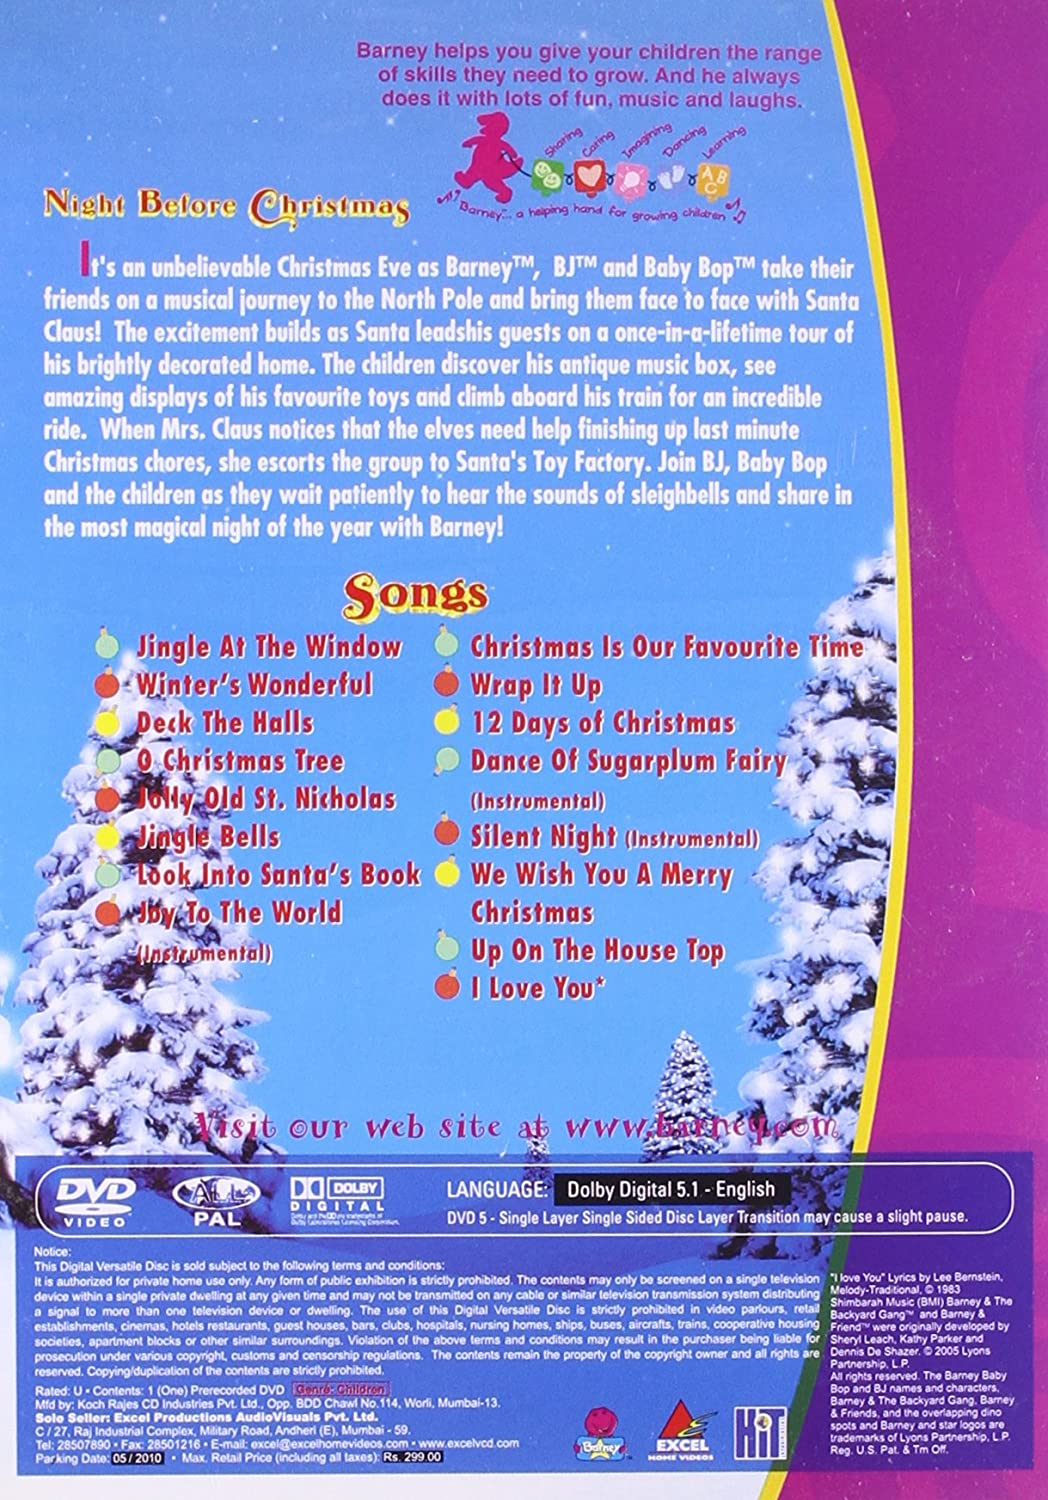 Amazon.in: Buy Barney:Night Before Christmas DVD, Blu-ray Online at ...